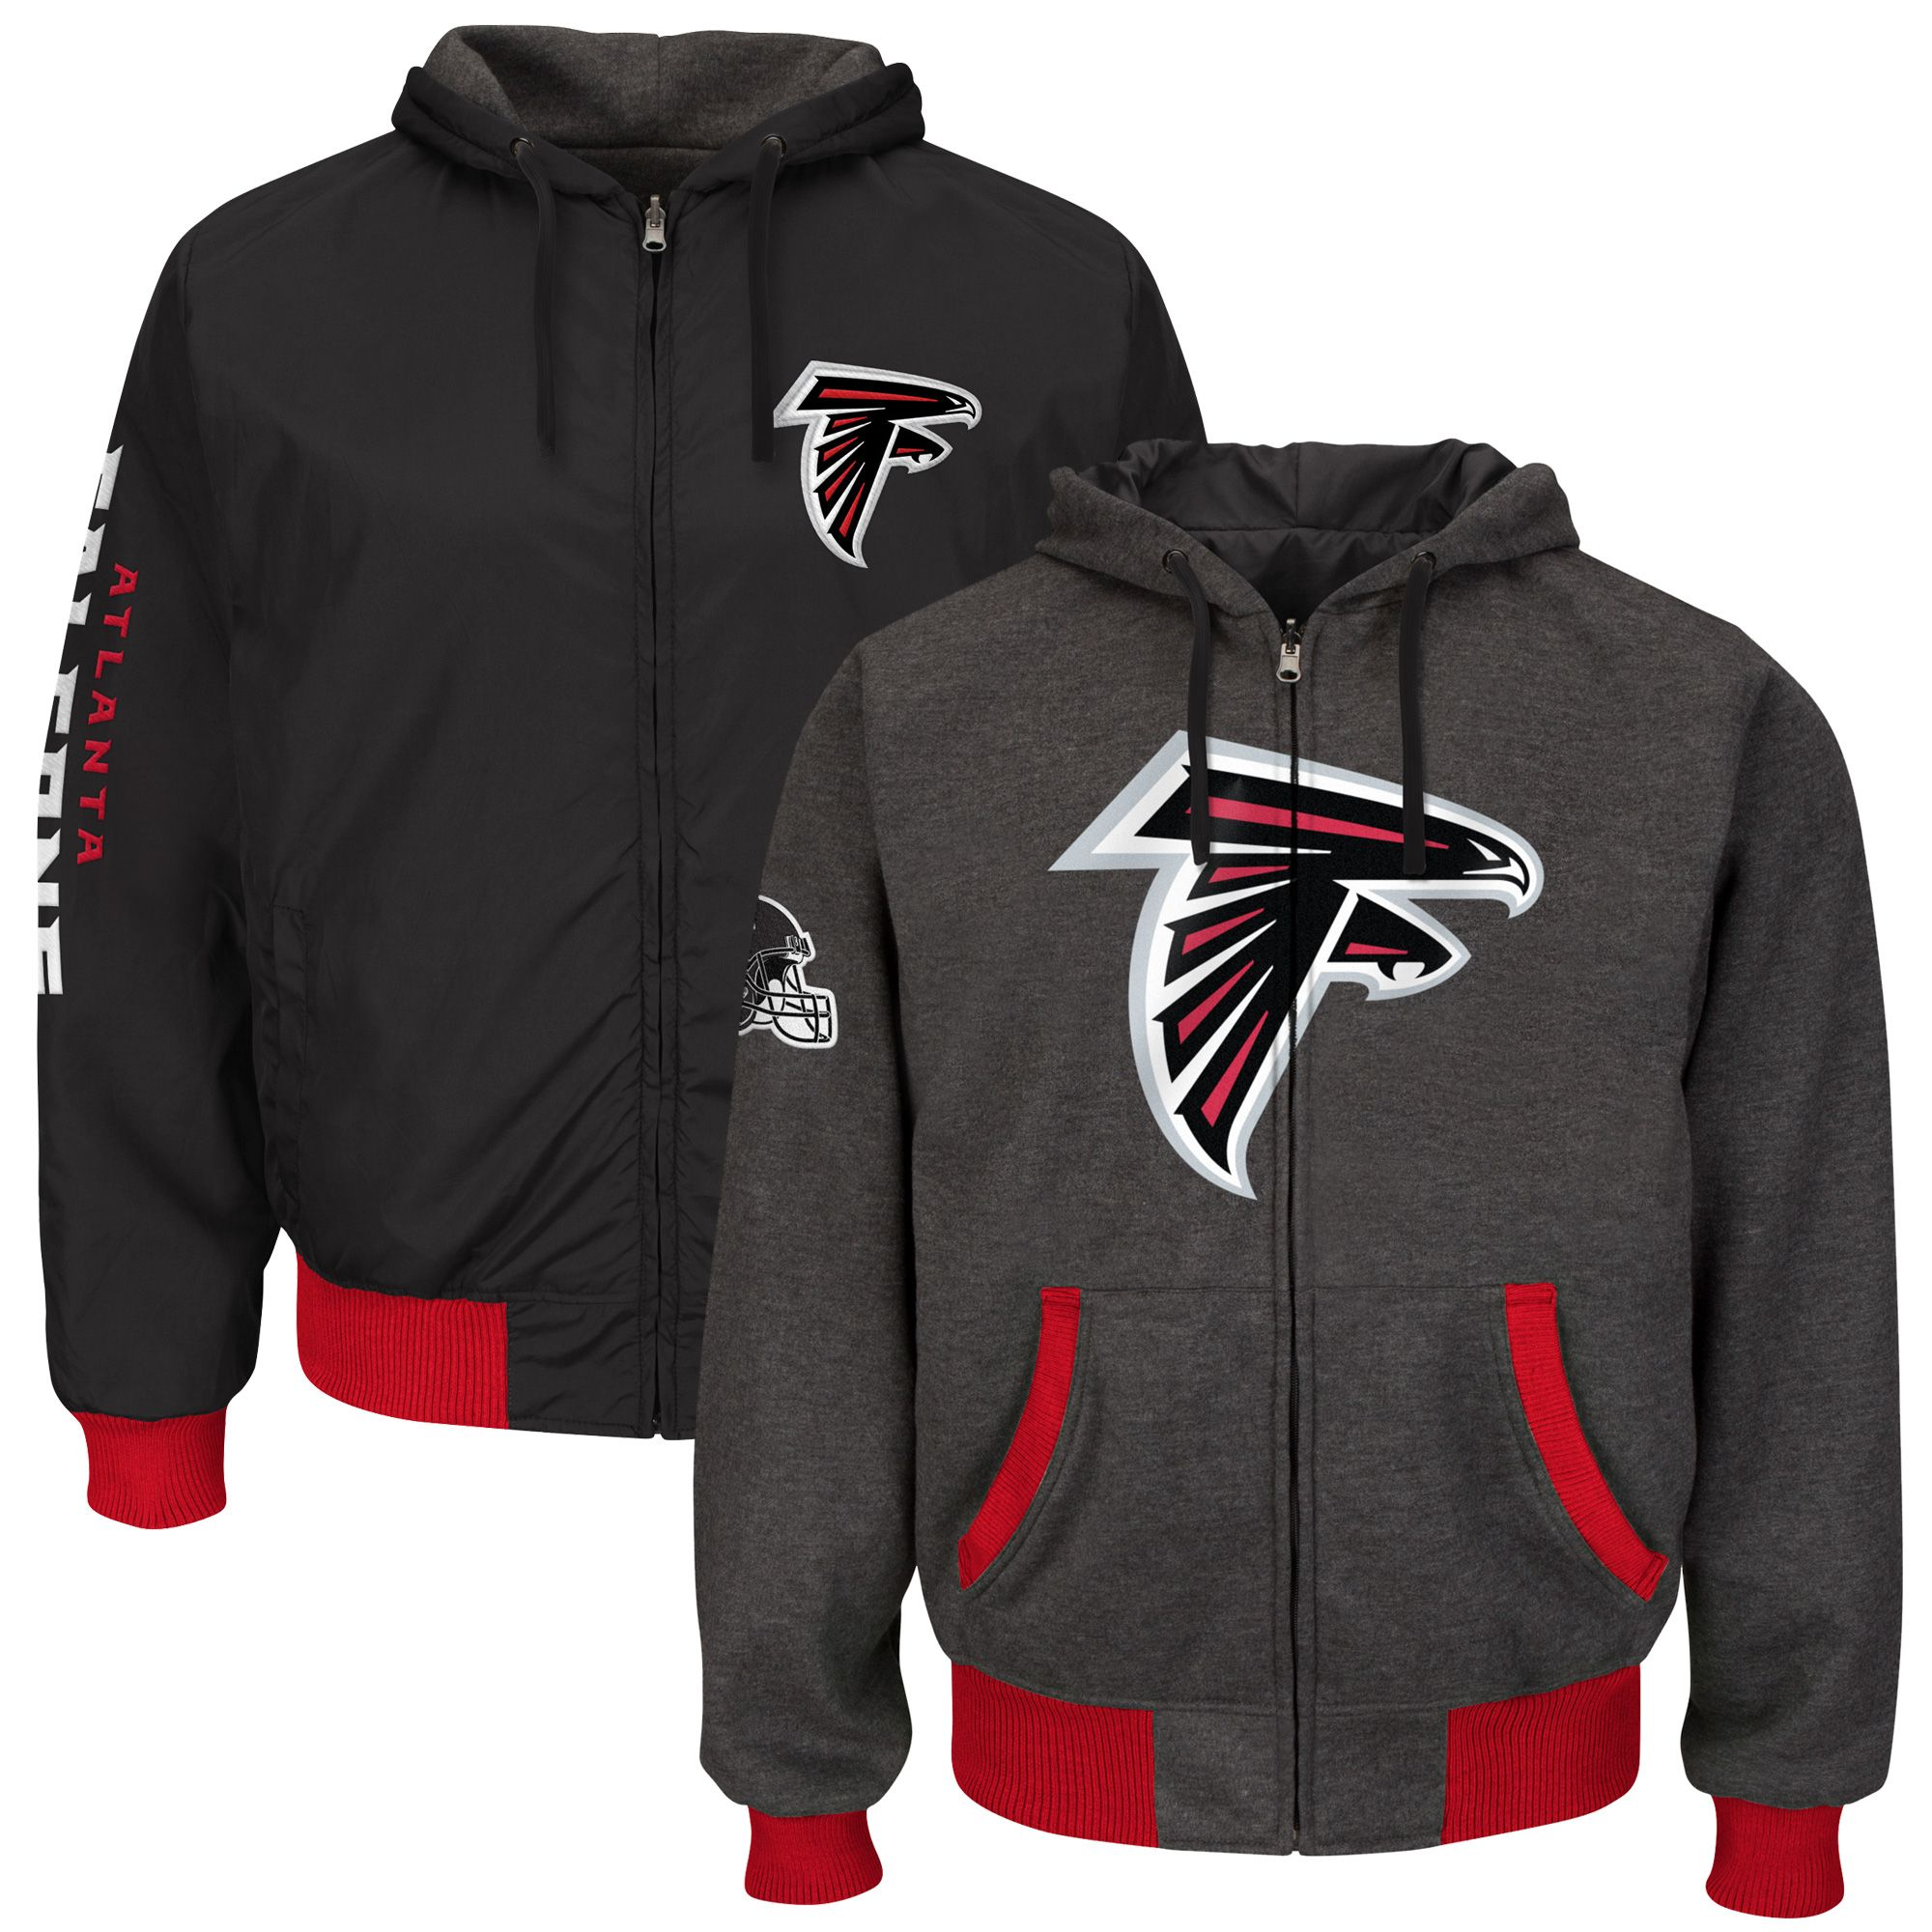 Nfl Atlanta Falcons Strike Reversible Full Zip Hoodie Heathered Gray Hoodies New York Jets Jacksonville Jaguars